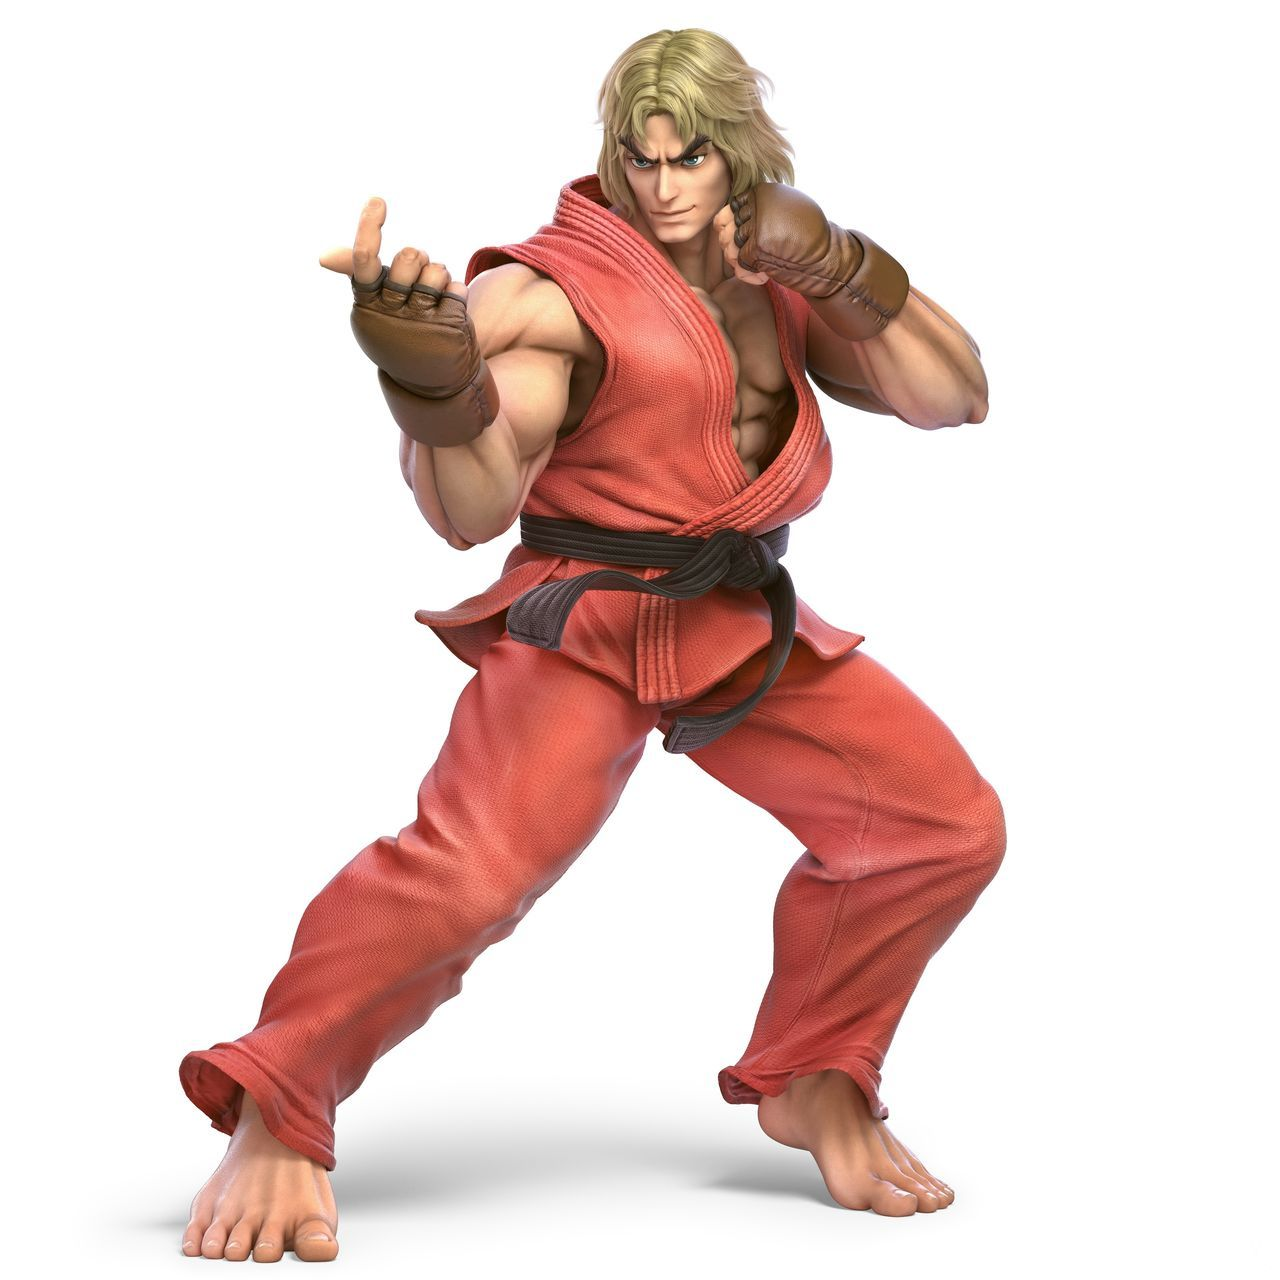 Ken en Super Smash Bros. Ultimate